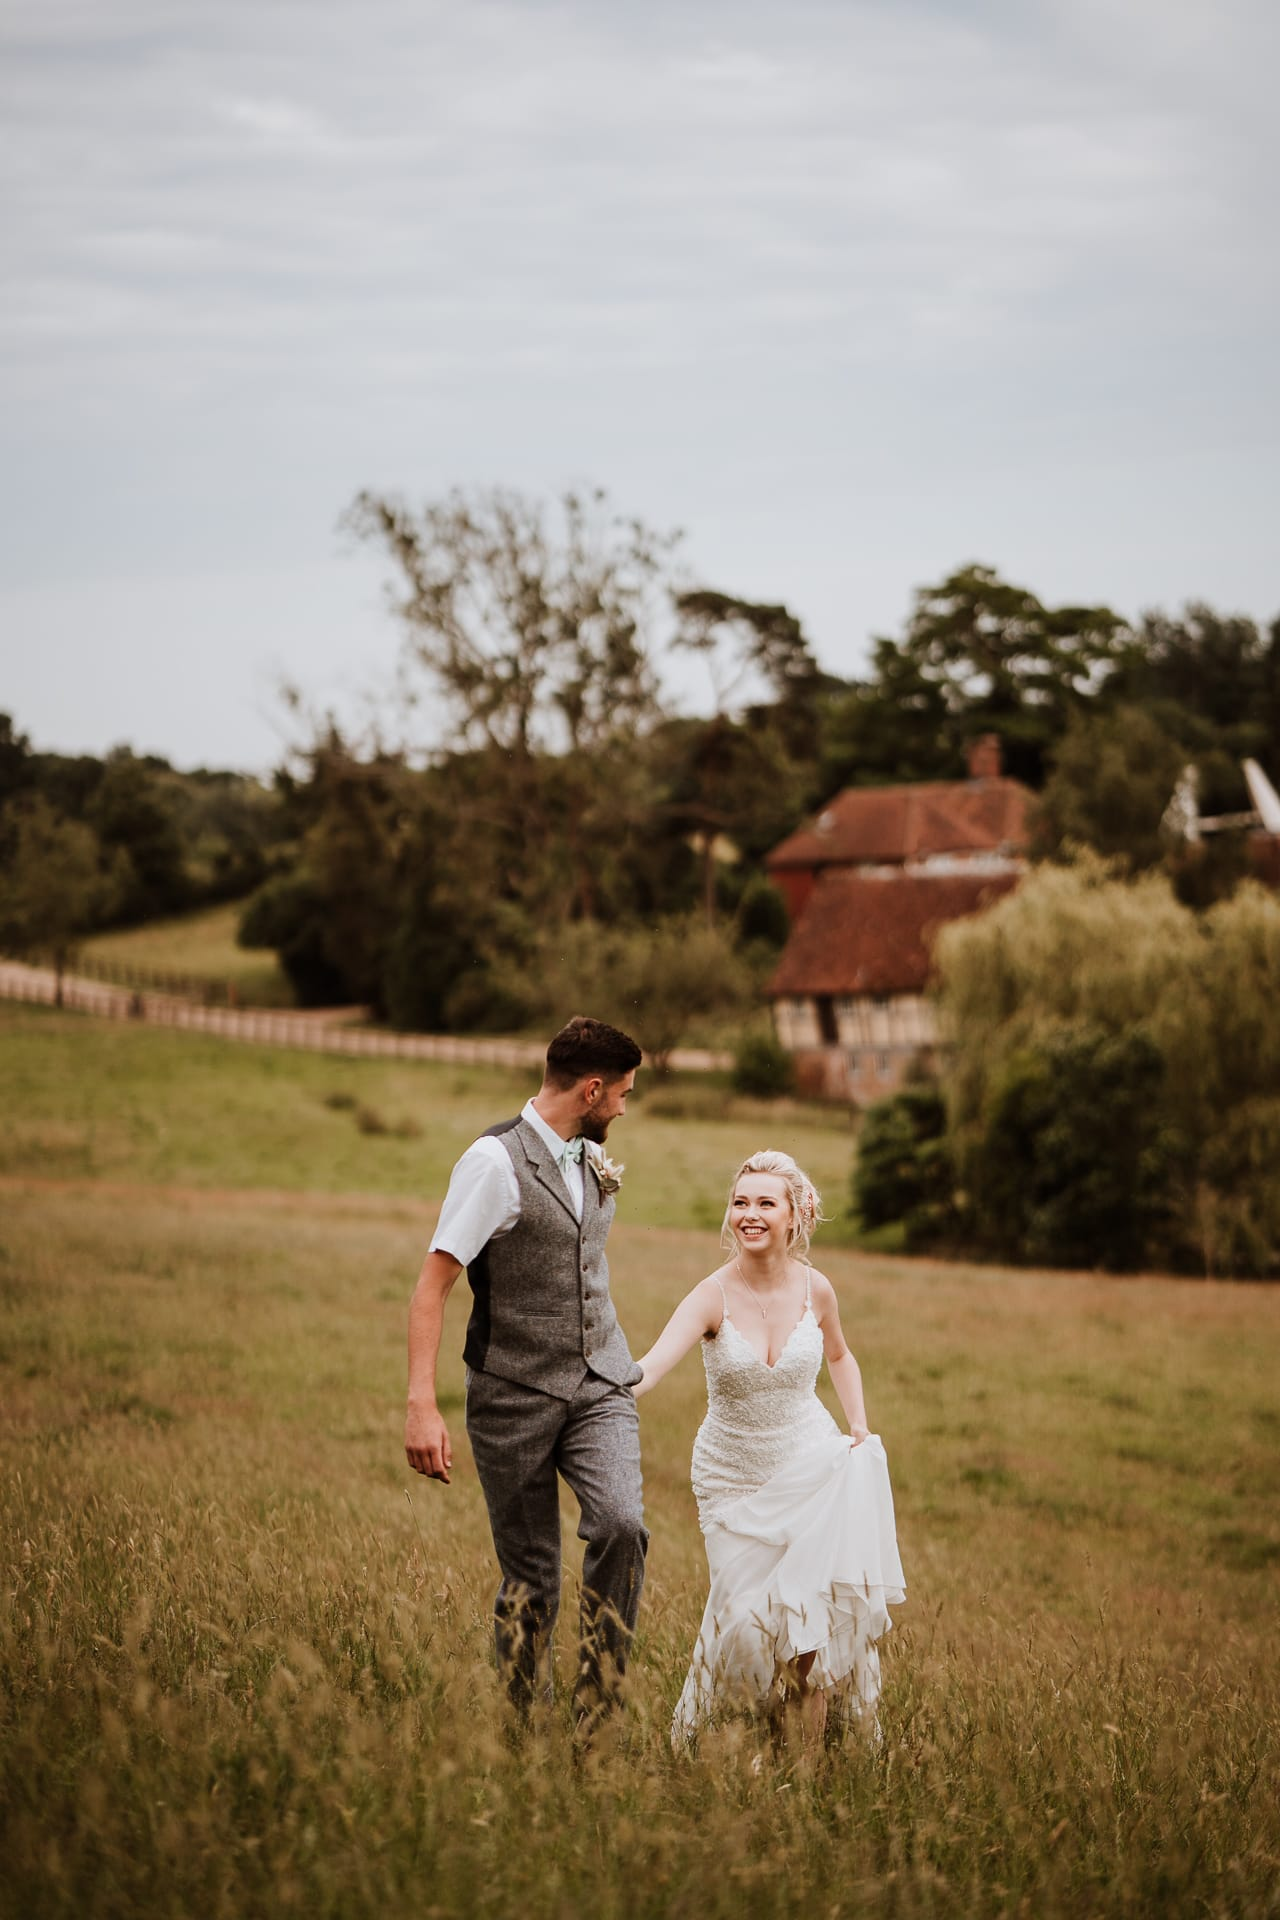 Groom leading Bride across a field